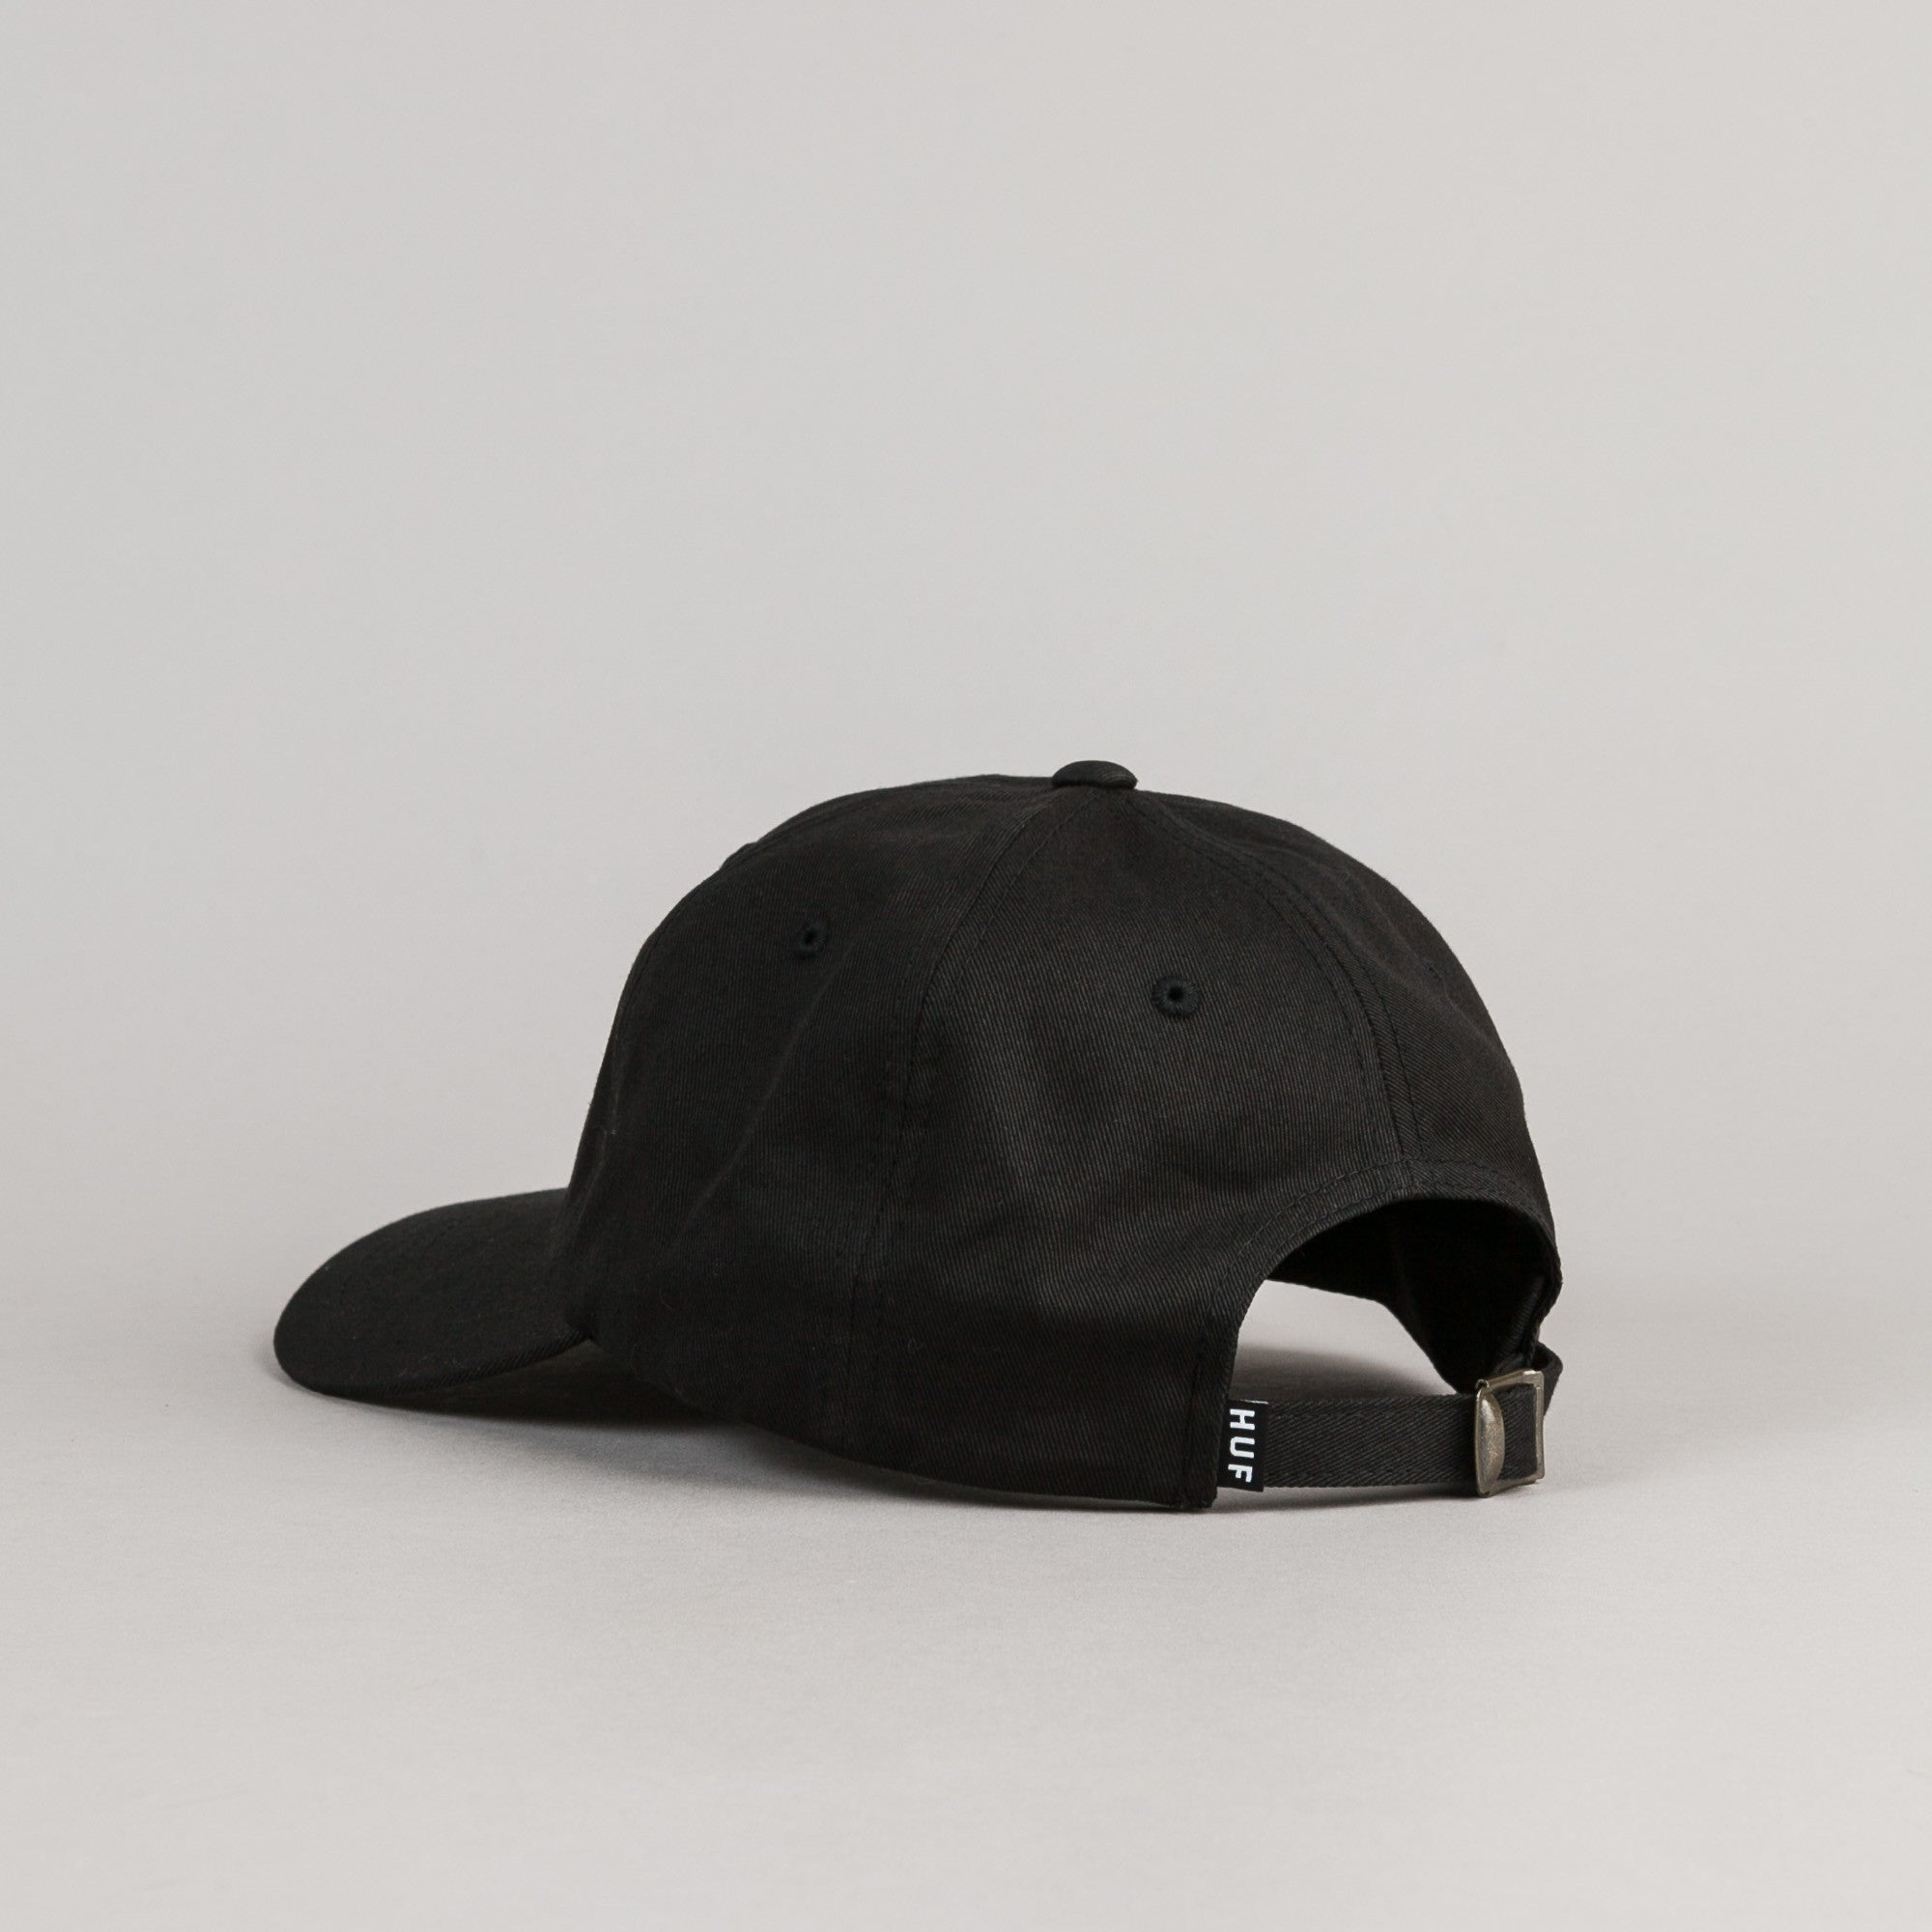 HUF Worldwide UV Cap - Black